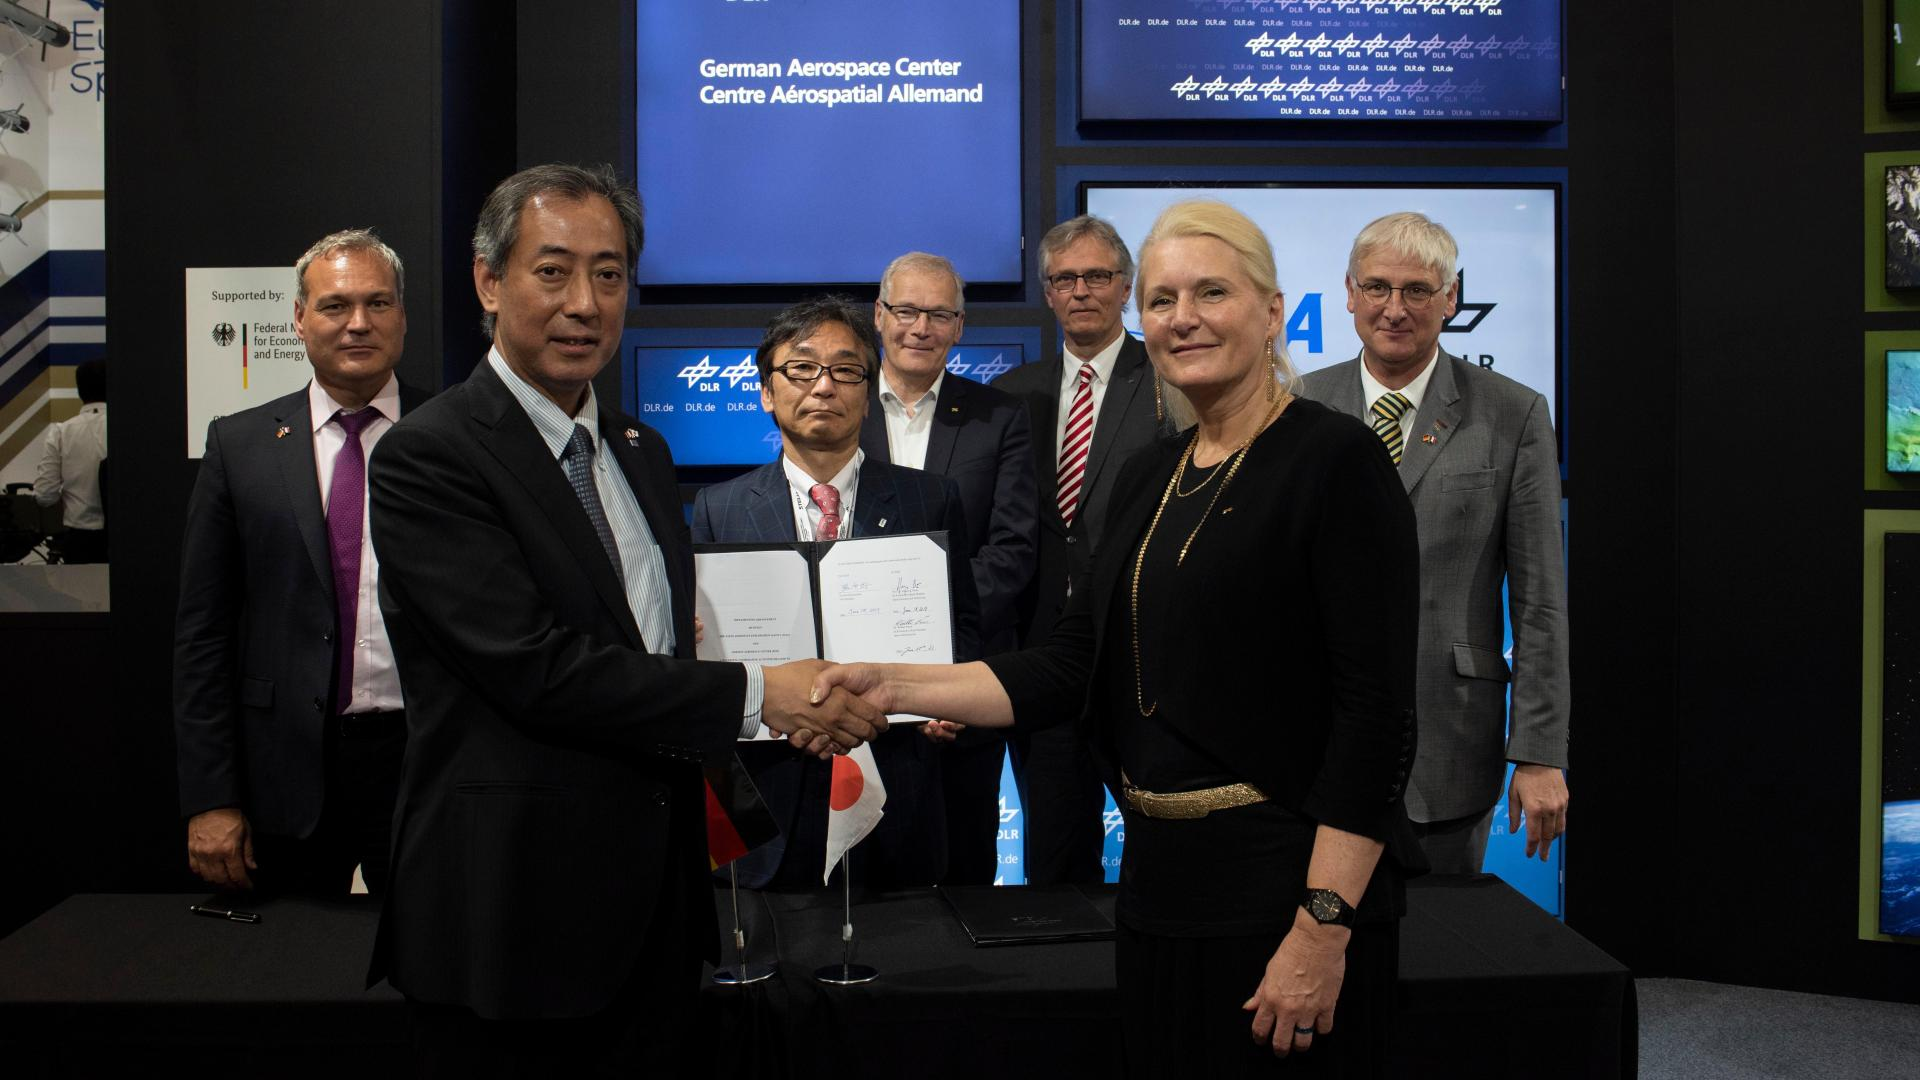 Signing of the cooperation agreement between JAXA and DLR